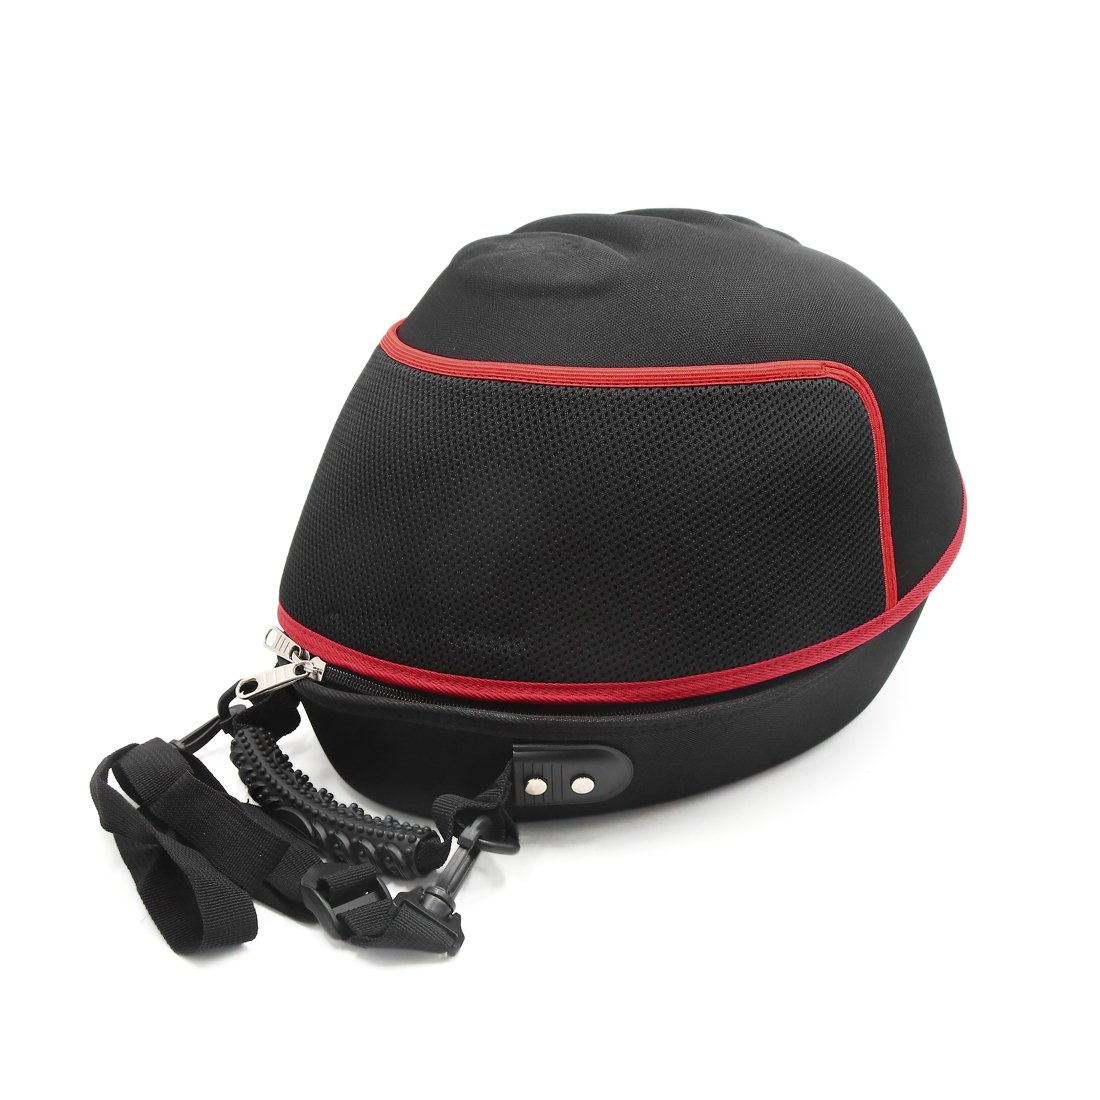 uxcell Black Red Zipper Closure Helmet Case Bag Carrier Holder Backpack for Motorcycle a17082100ux0864